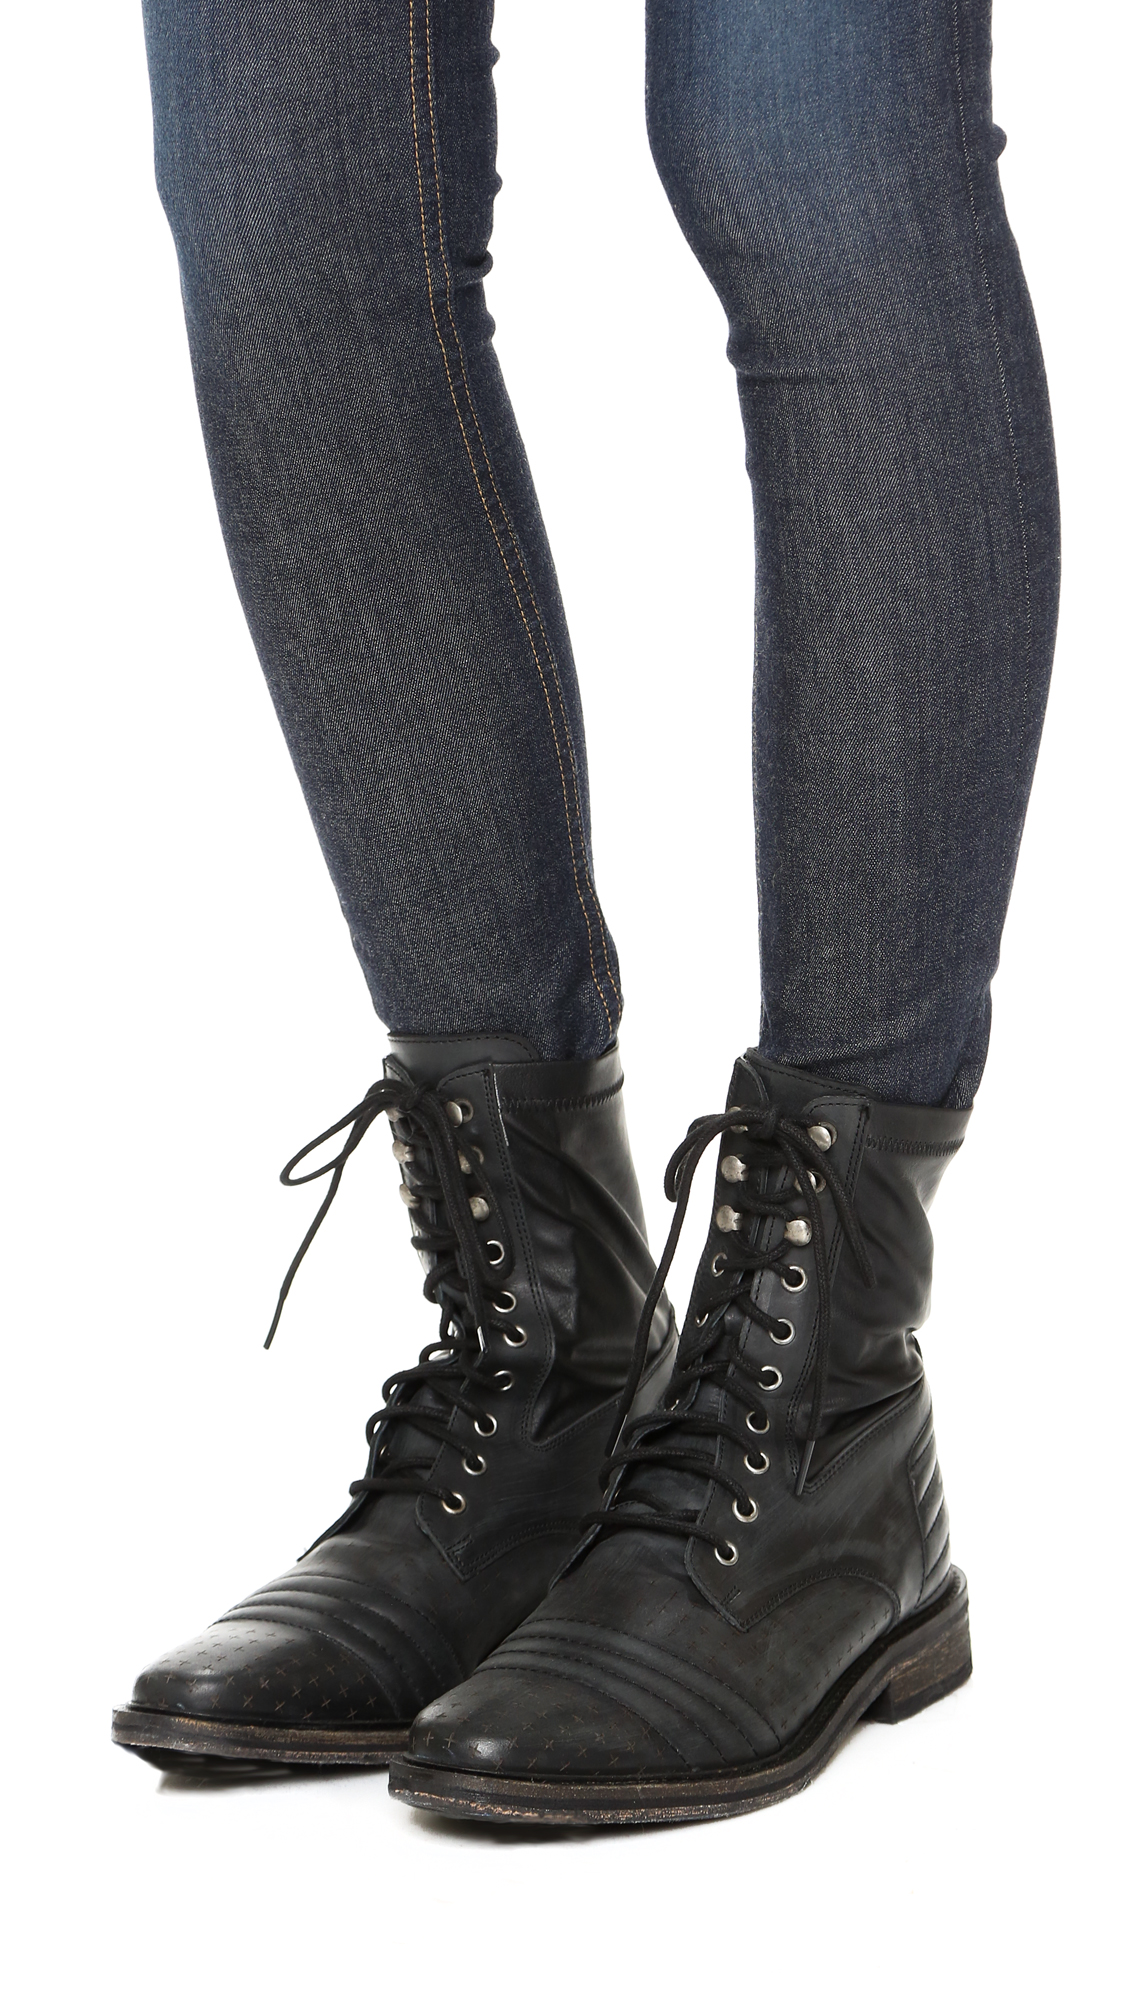 c3f6c2afdb5d8 Free People Sounder Lace Up Booties